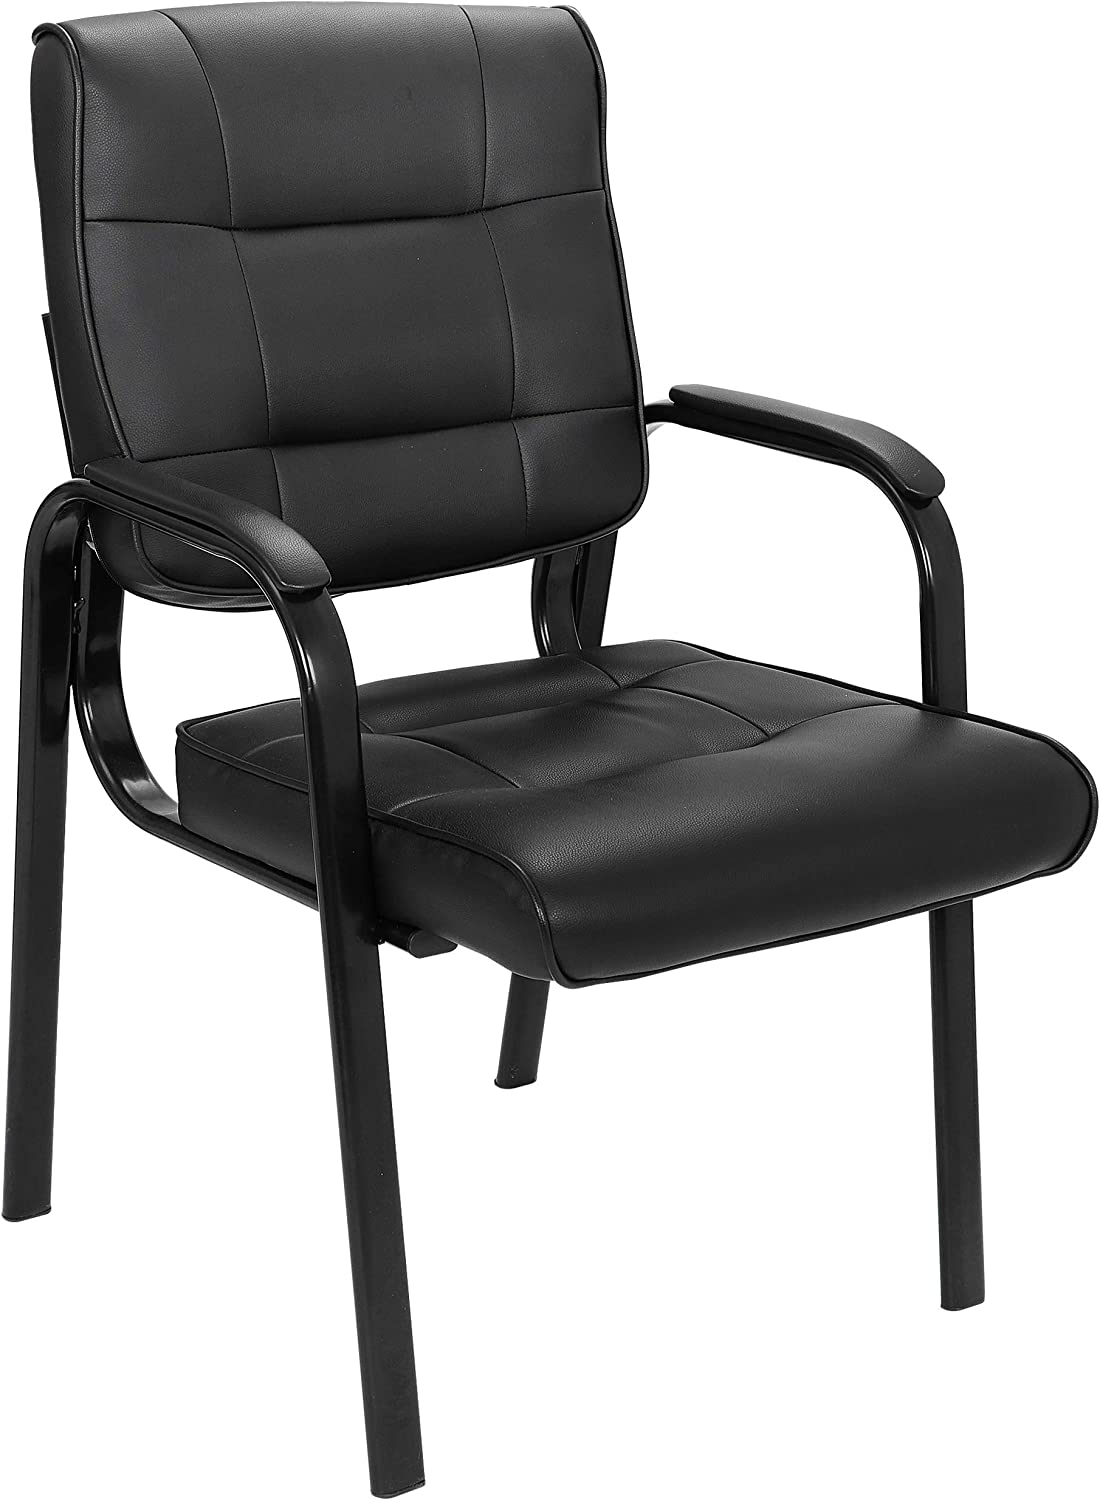 ZenStyle Leather Guest Chair Office with Metal Frame, Bonded Leather Padded Arm Rest Chairs for Waiting Room, Reception Meeting, Conference